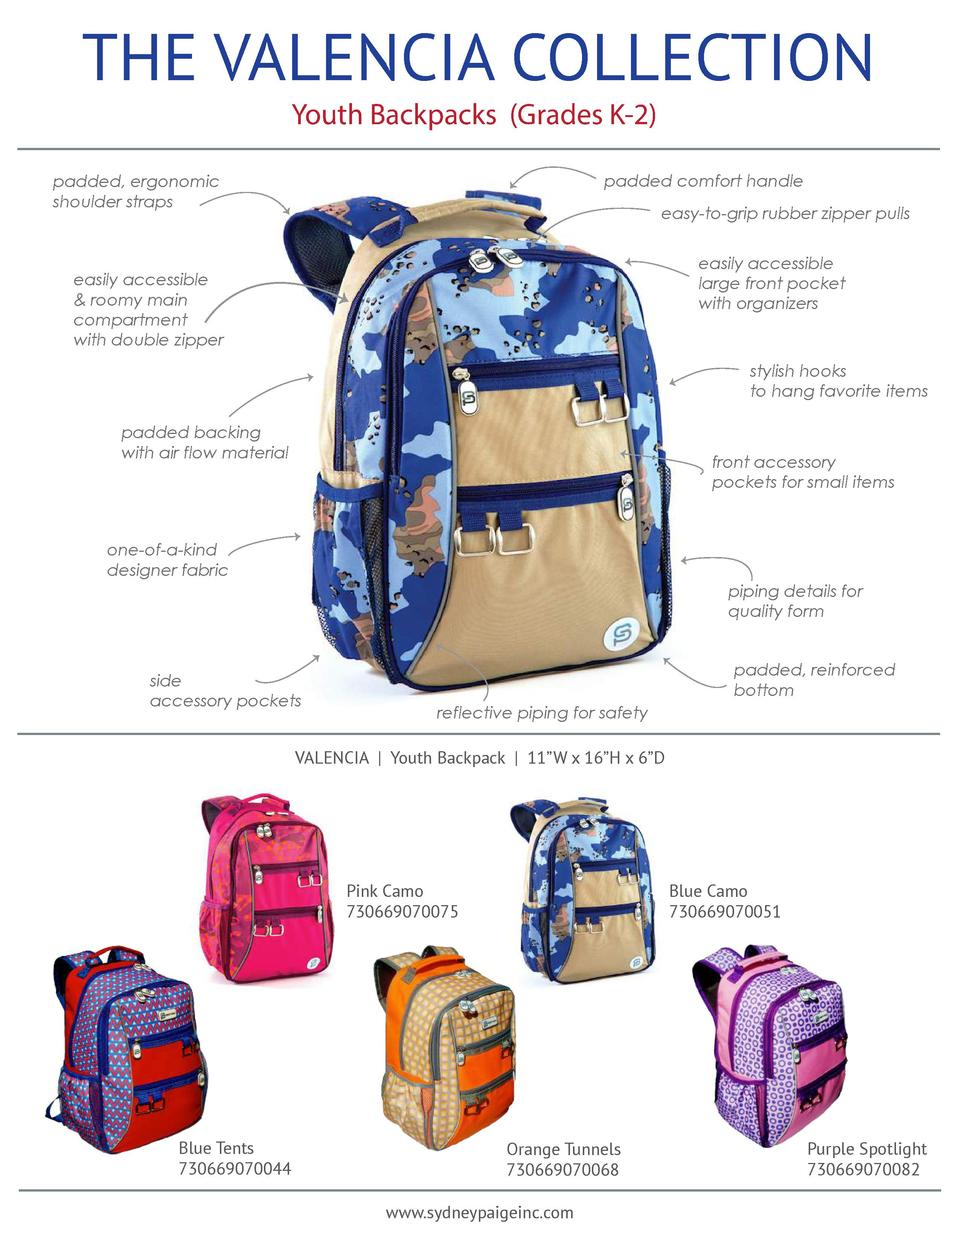 THE VALENCIA COLLECTION Youth Backpacks  Grades K-2   padded comfort handle  padded, ergonomic shoulder straps  easy-to-gr...